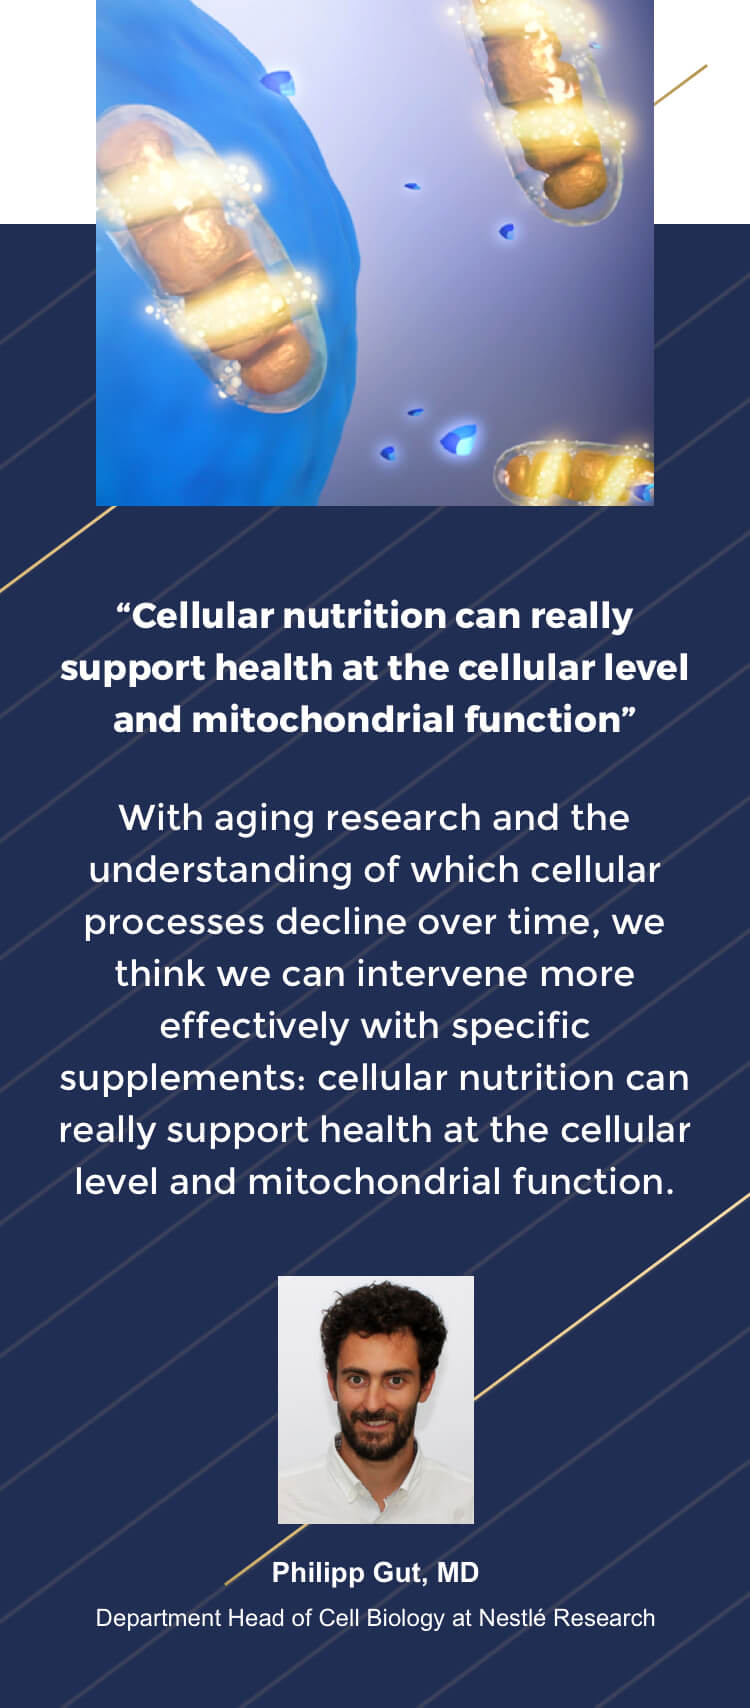 Expert opinion on Cellular Nutrition